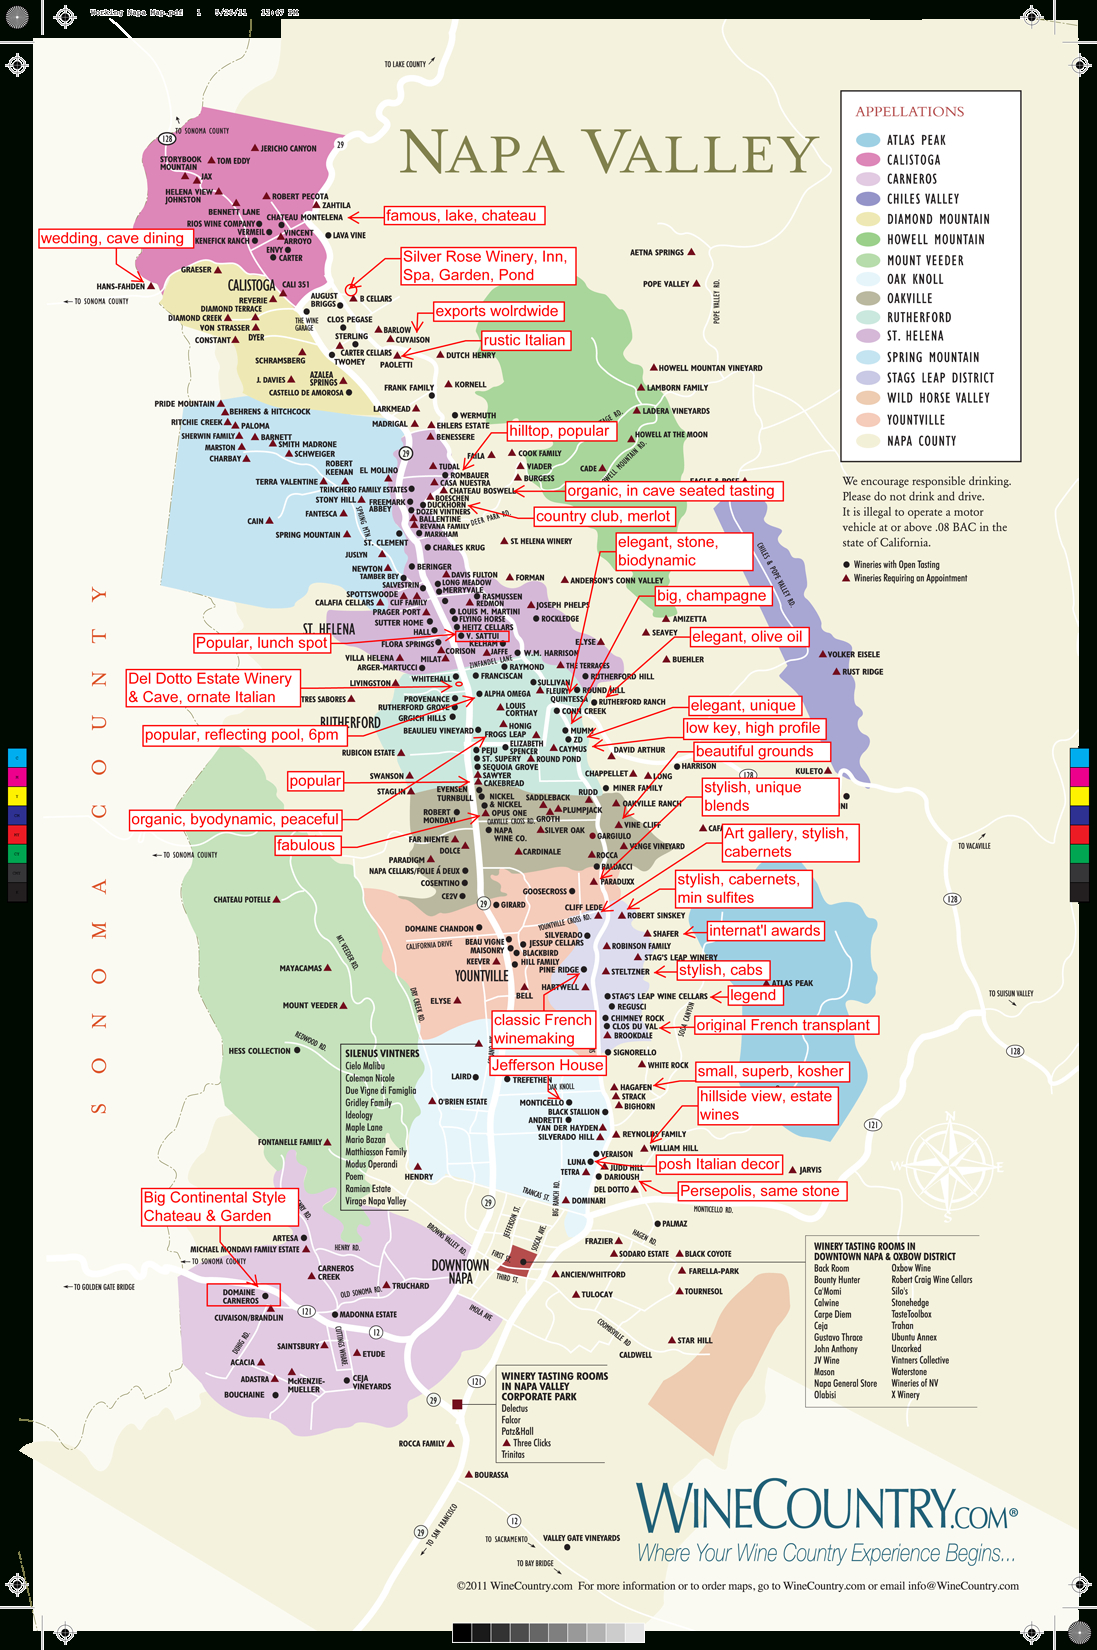 Do You Think You Could All Wineries In One Lifetime? We're Thinking - Sonoma Wineries Map Printable